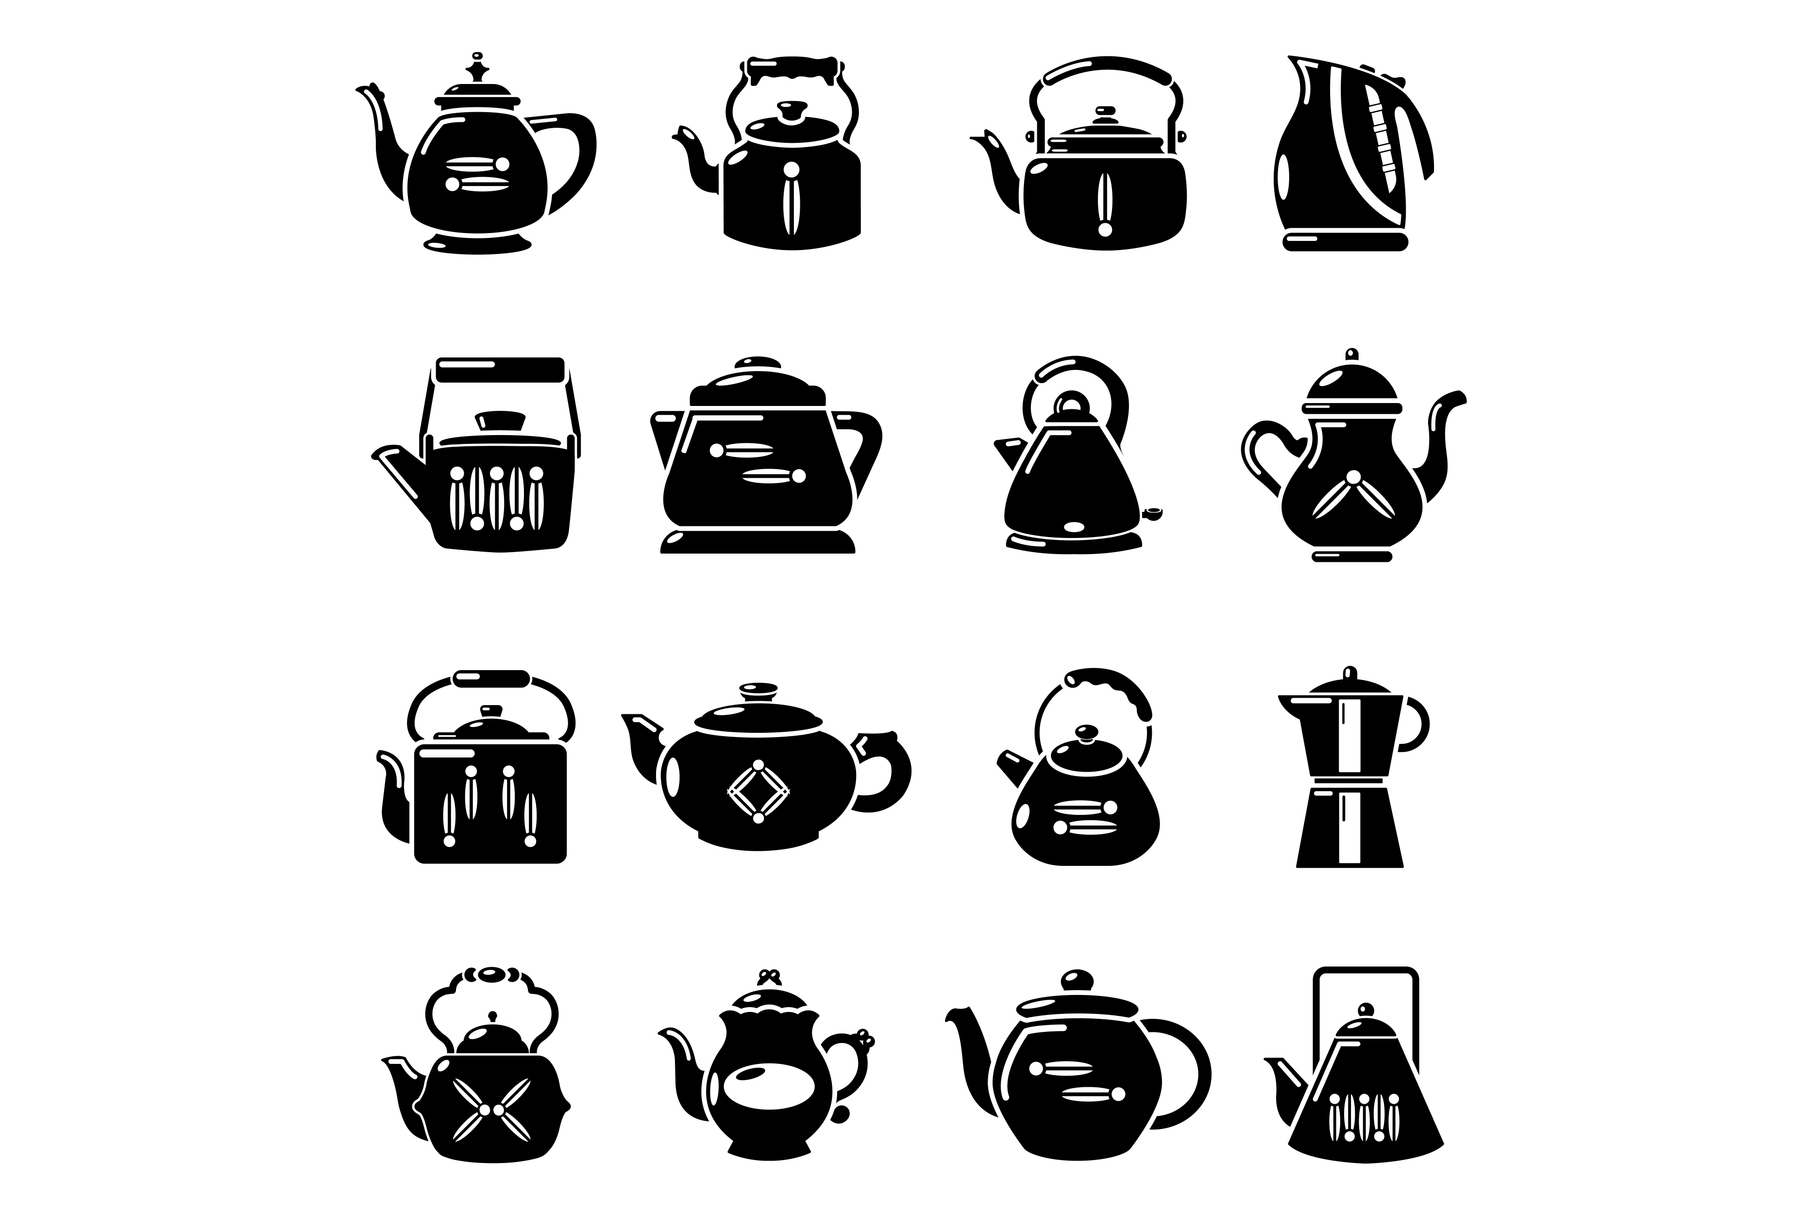 Teapot icons set, simple style example image 1